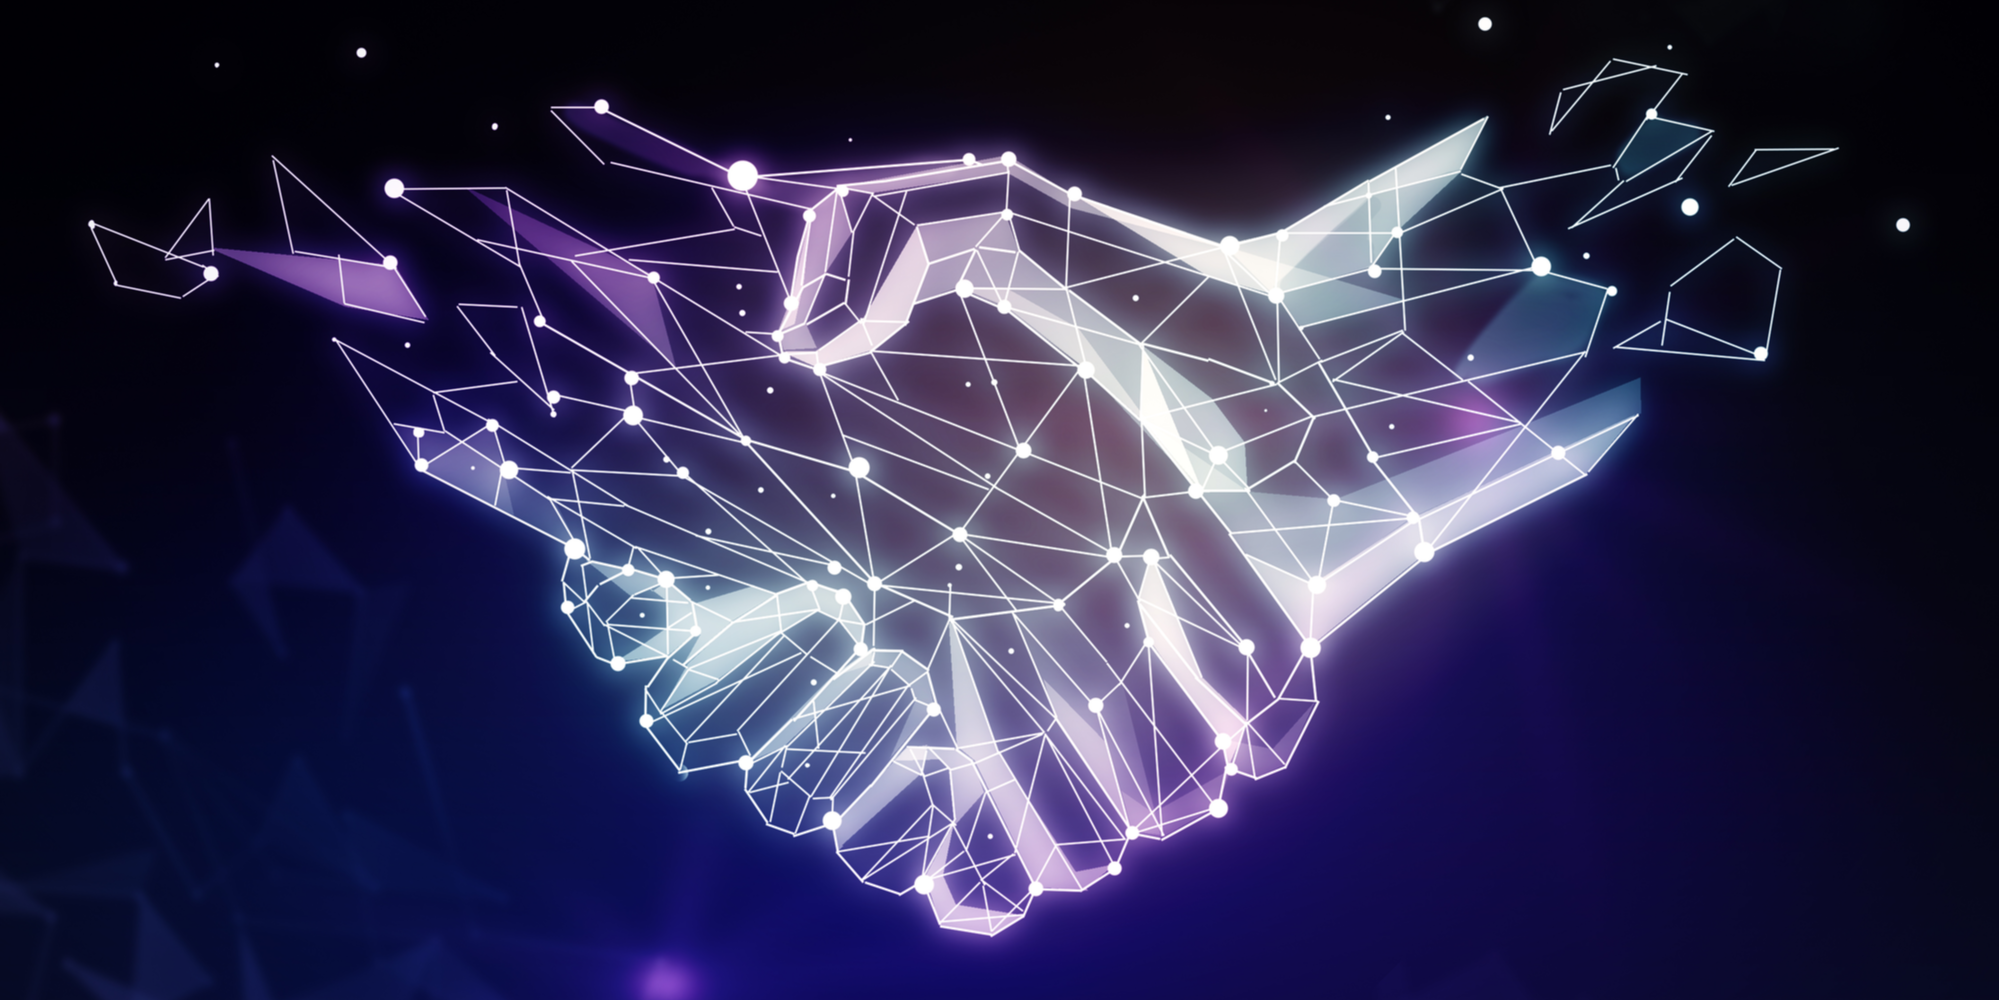 LORCA partners with Kudelski Security to support cyber innovators